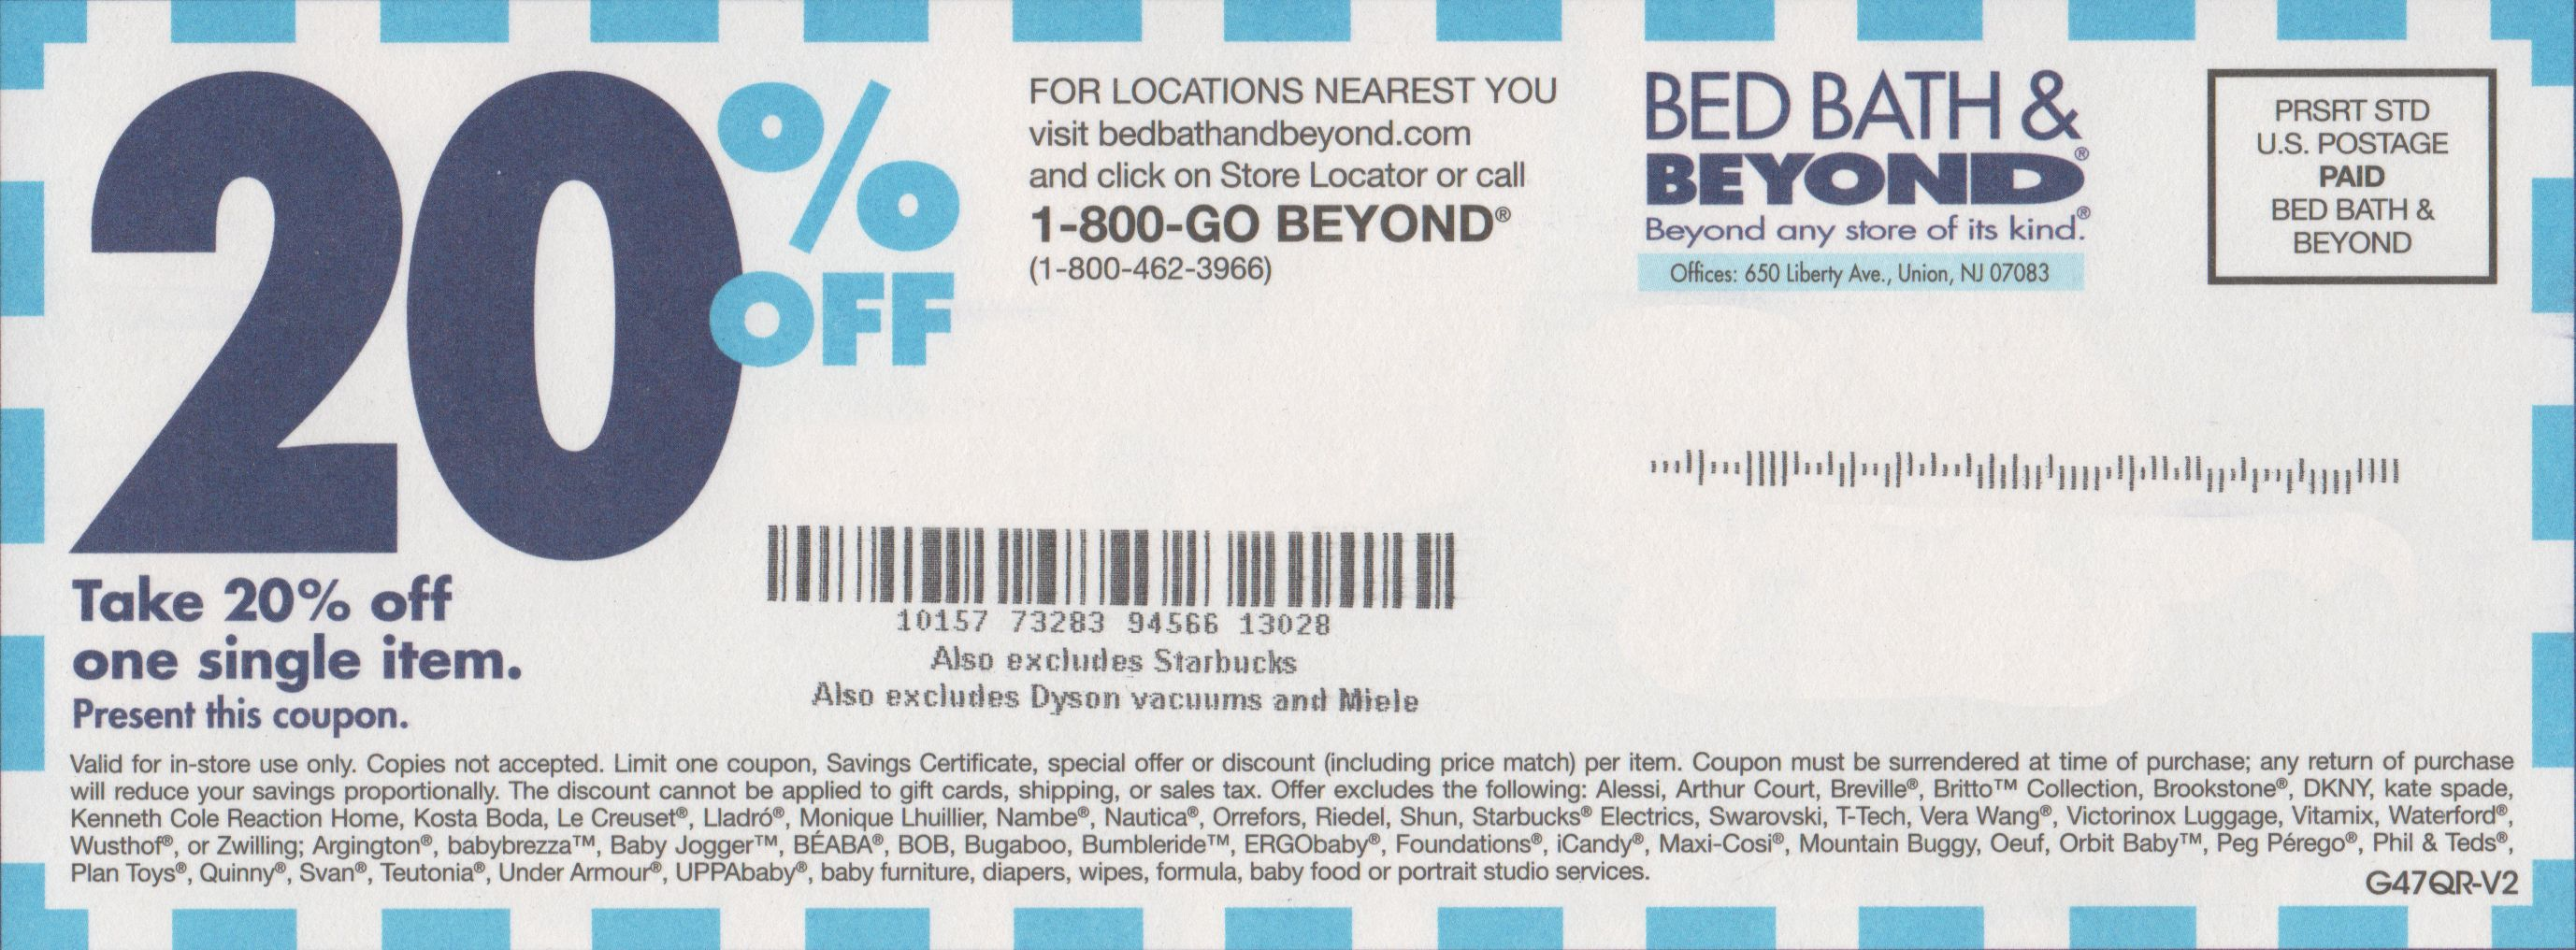 Bed Bath   Beyond Printable Coupon 20 Percent Off In Store. Bed Bath   Beyond Printable Coupon 20 Percent Off In Store   Bed